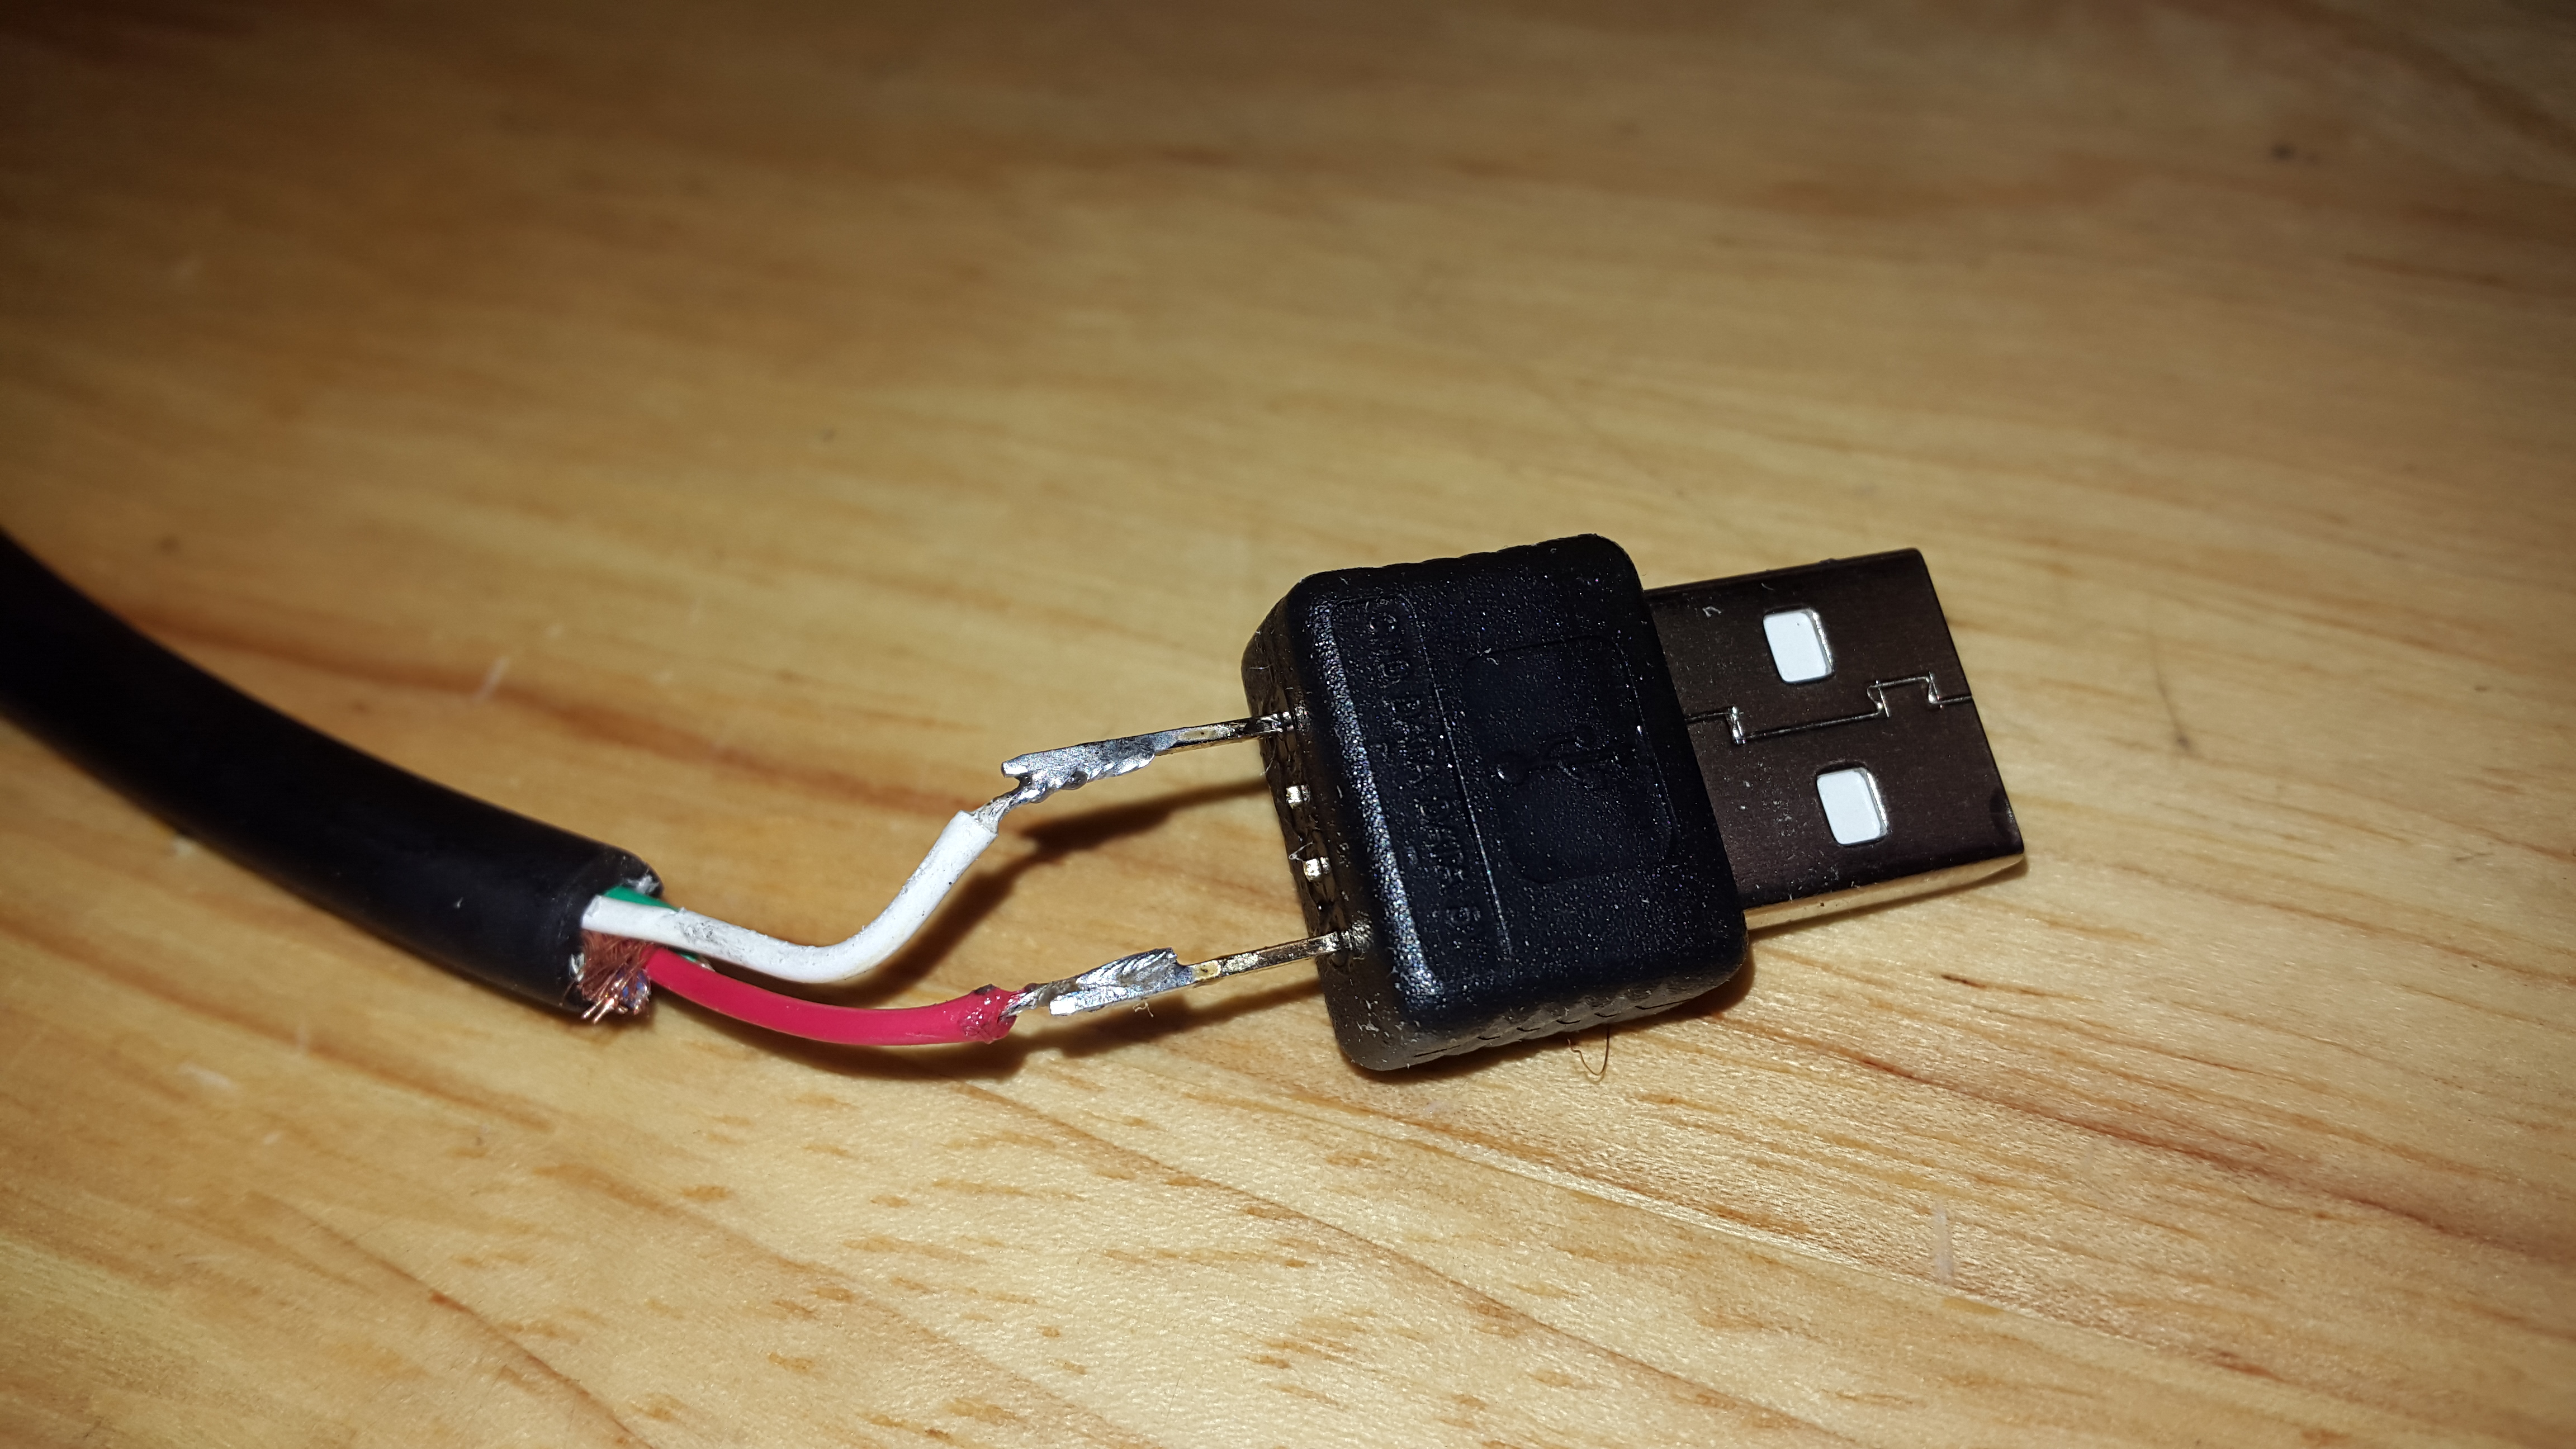 Picture of Connect Cable to USB